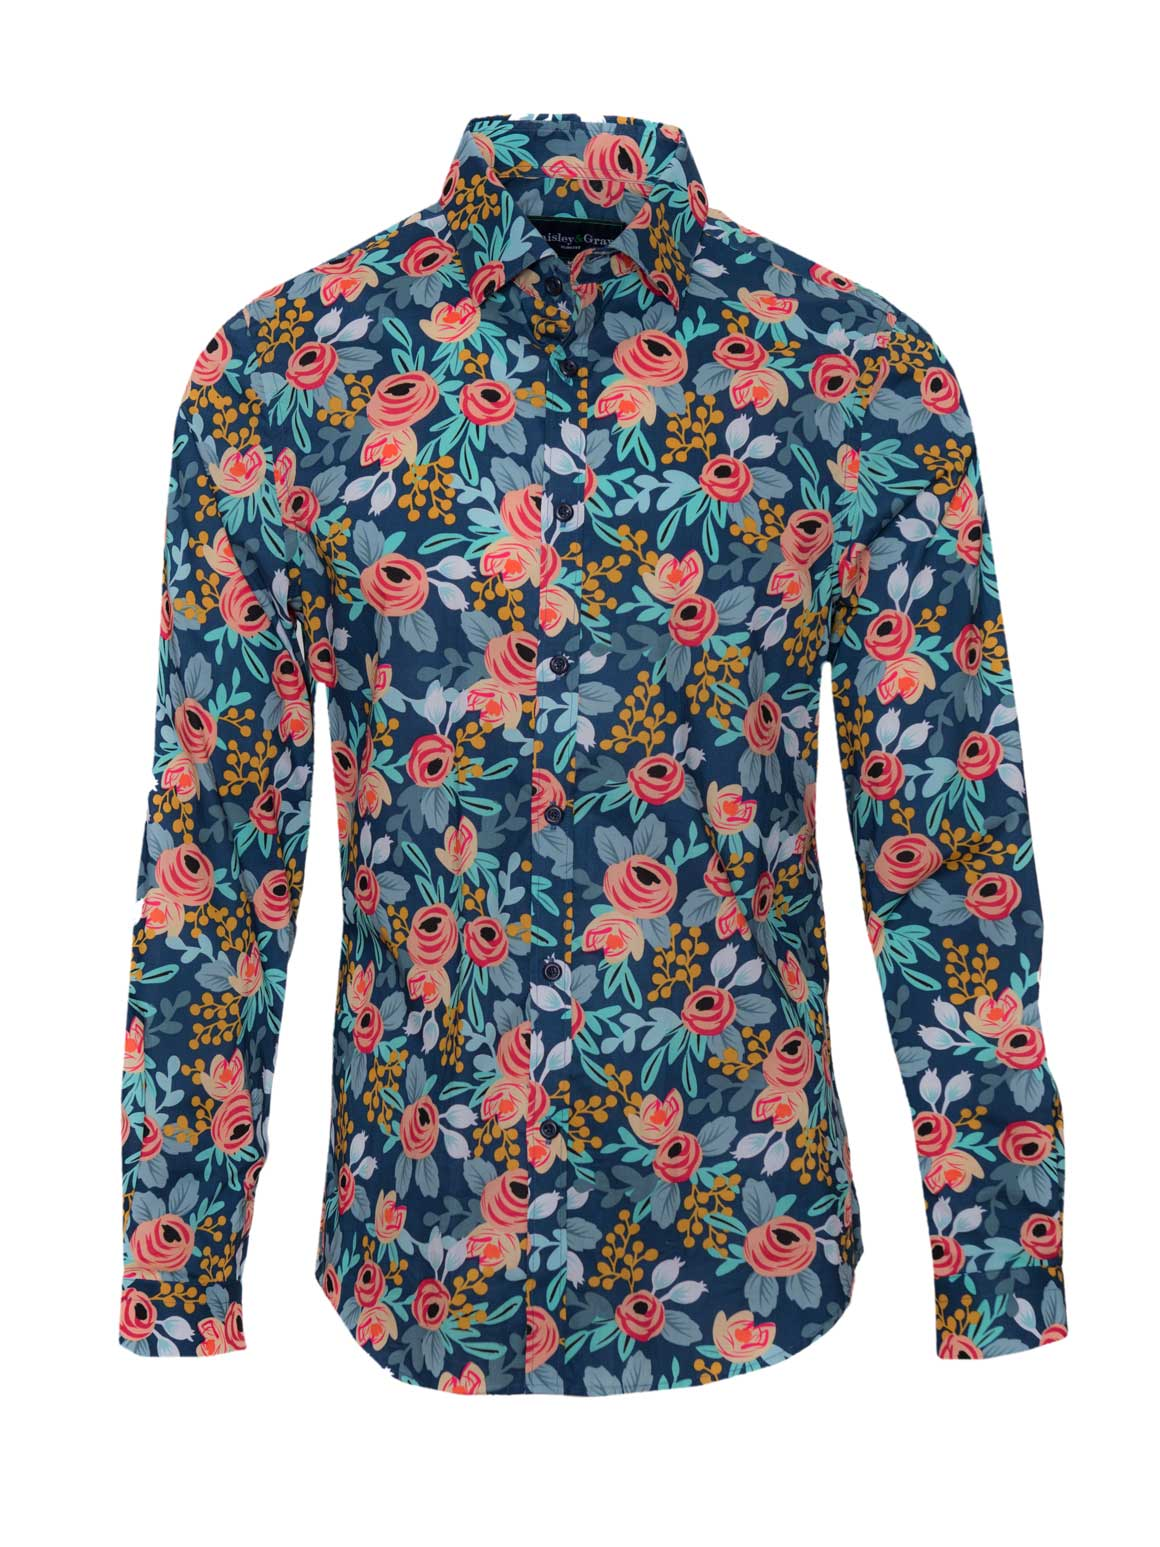 Long Sleeve Shirt - Rose & Rust Floral